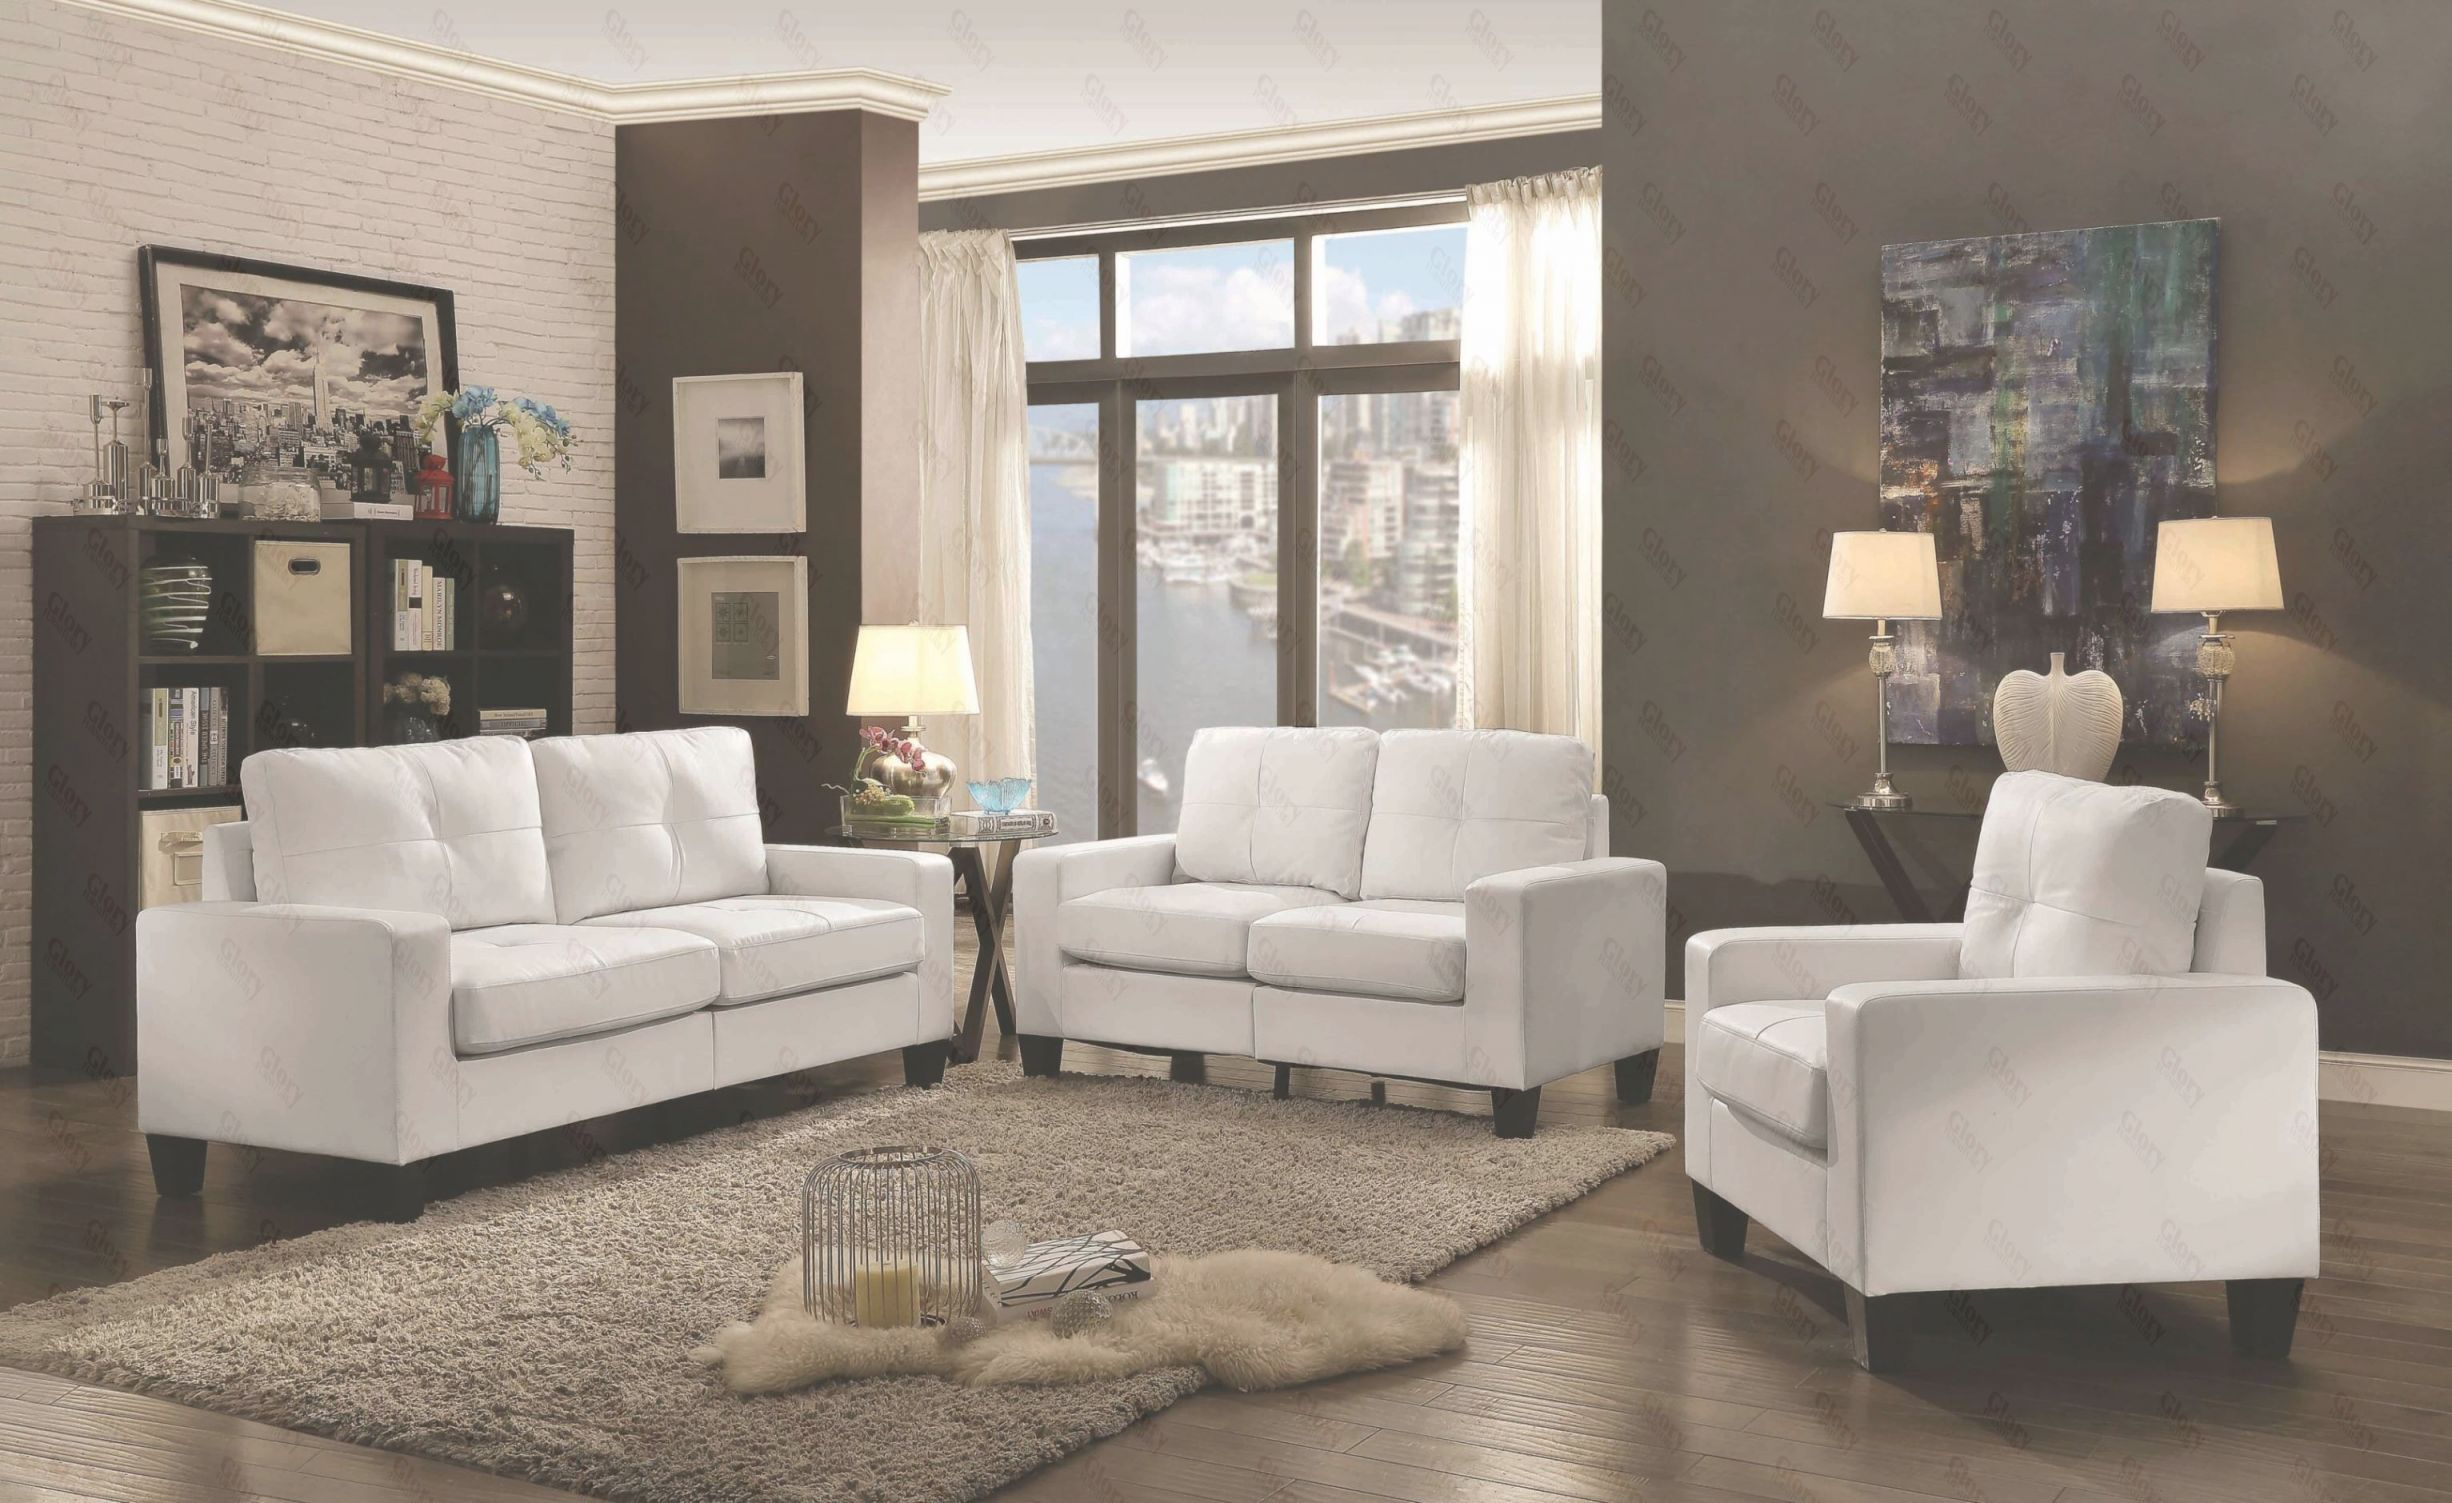 Transitional Living | Talhaya Furniture for Best of Transitional Living Room Furniture